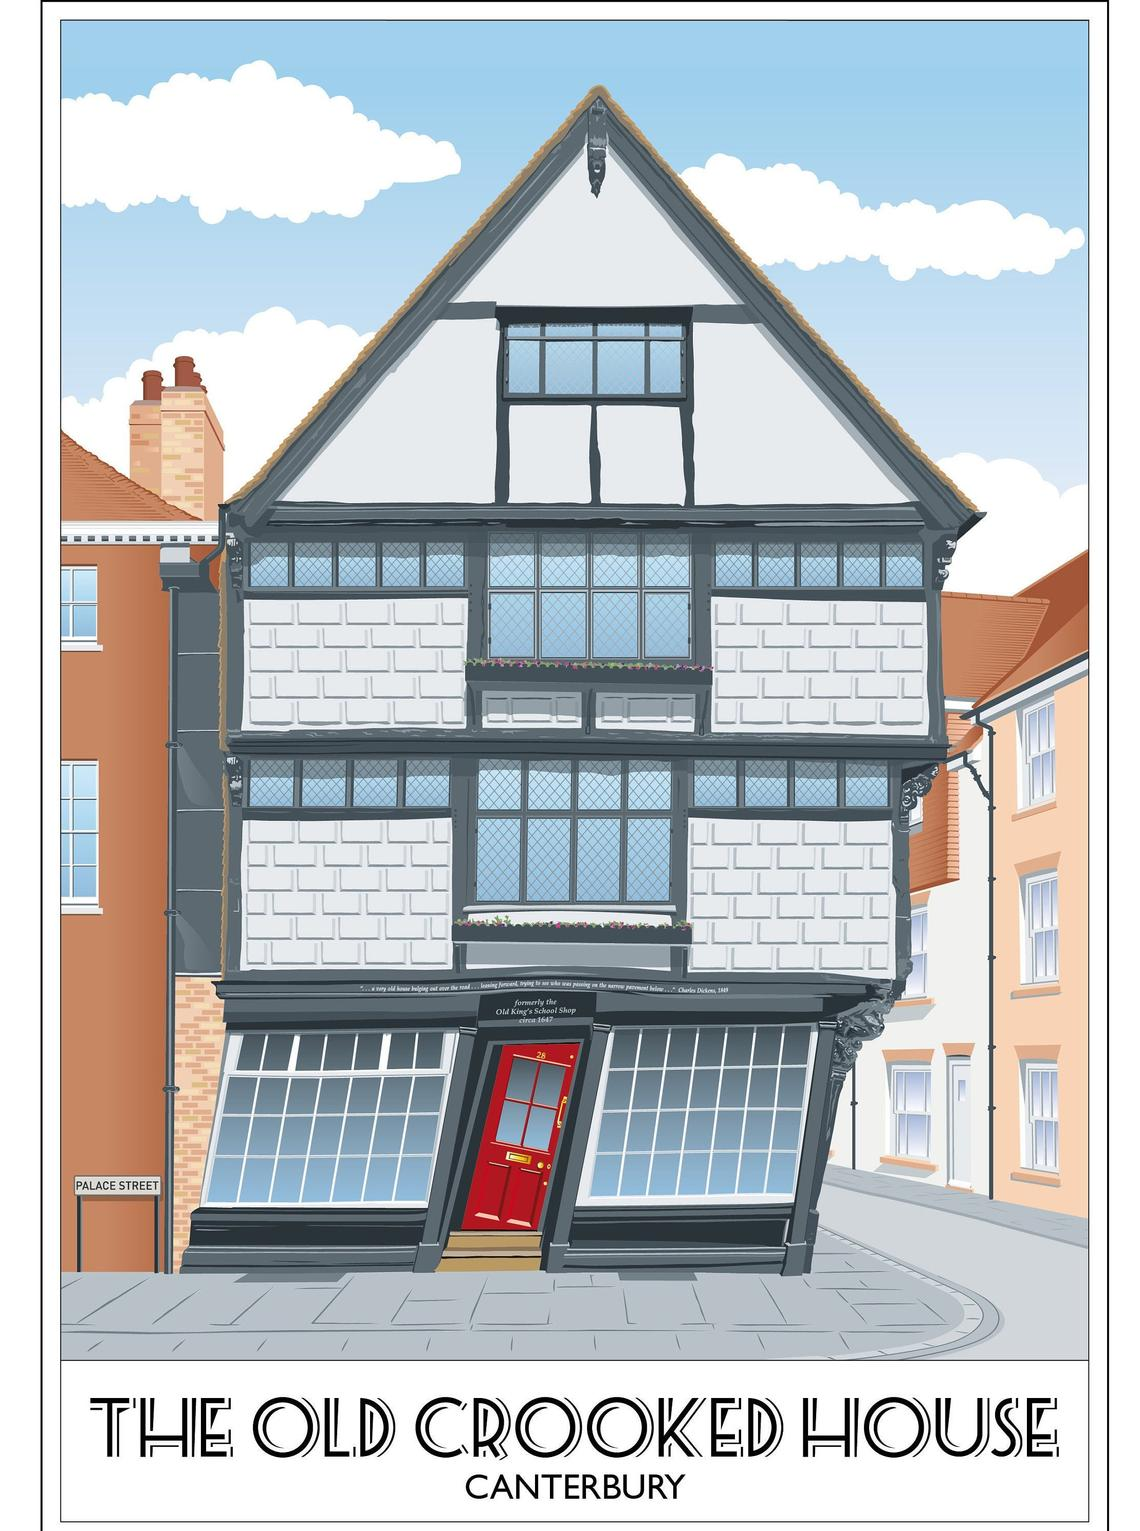 The Old Crooked House, Kings School Shop, Sir John Boys, Kent